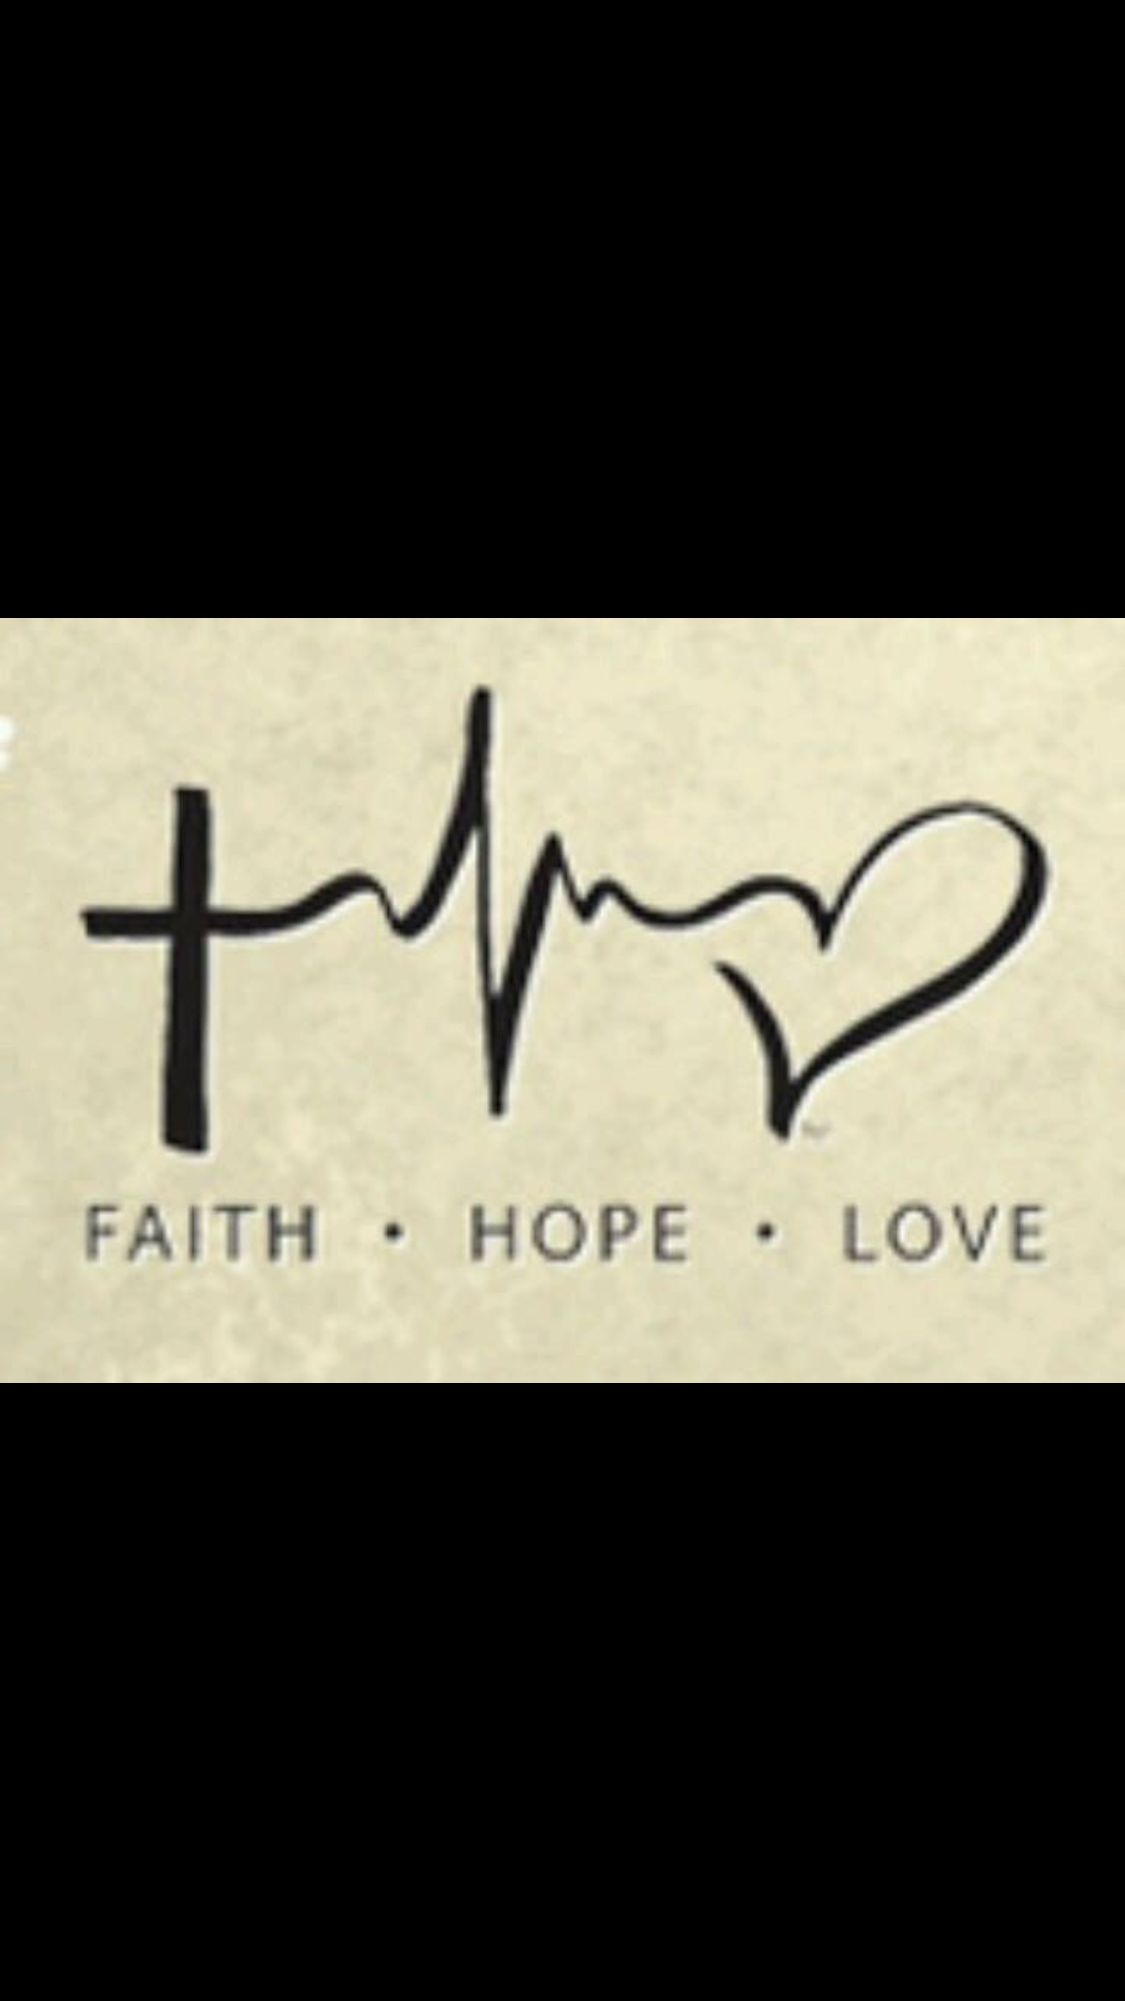 Faith Hope Love Tattoo Inspired Pinterest Tattoo Tatting And